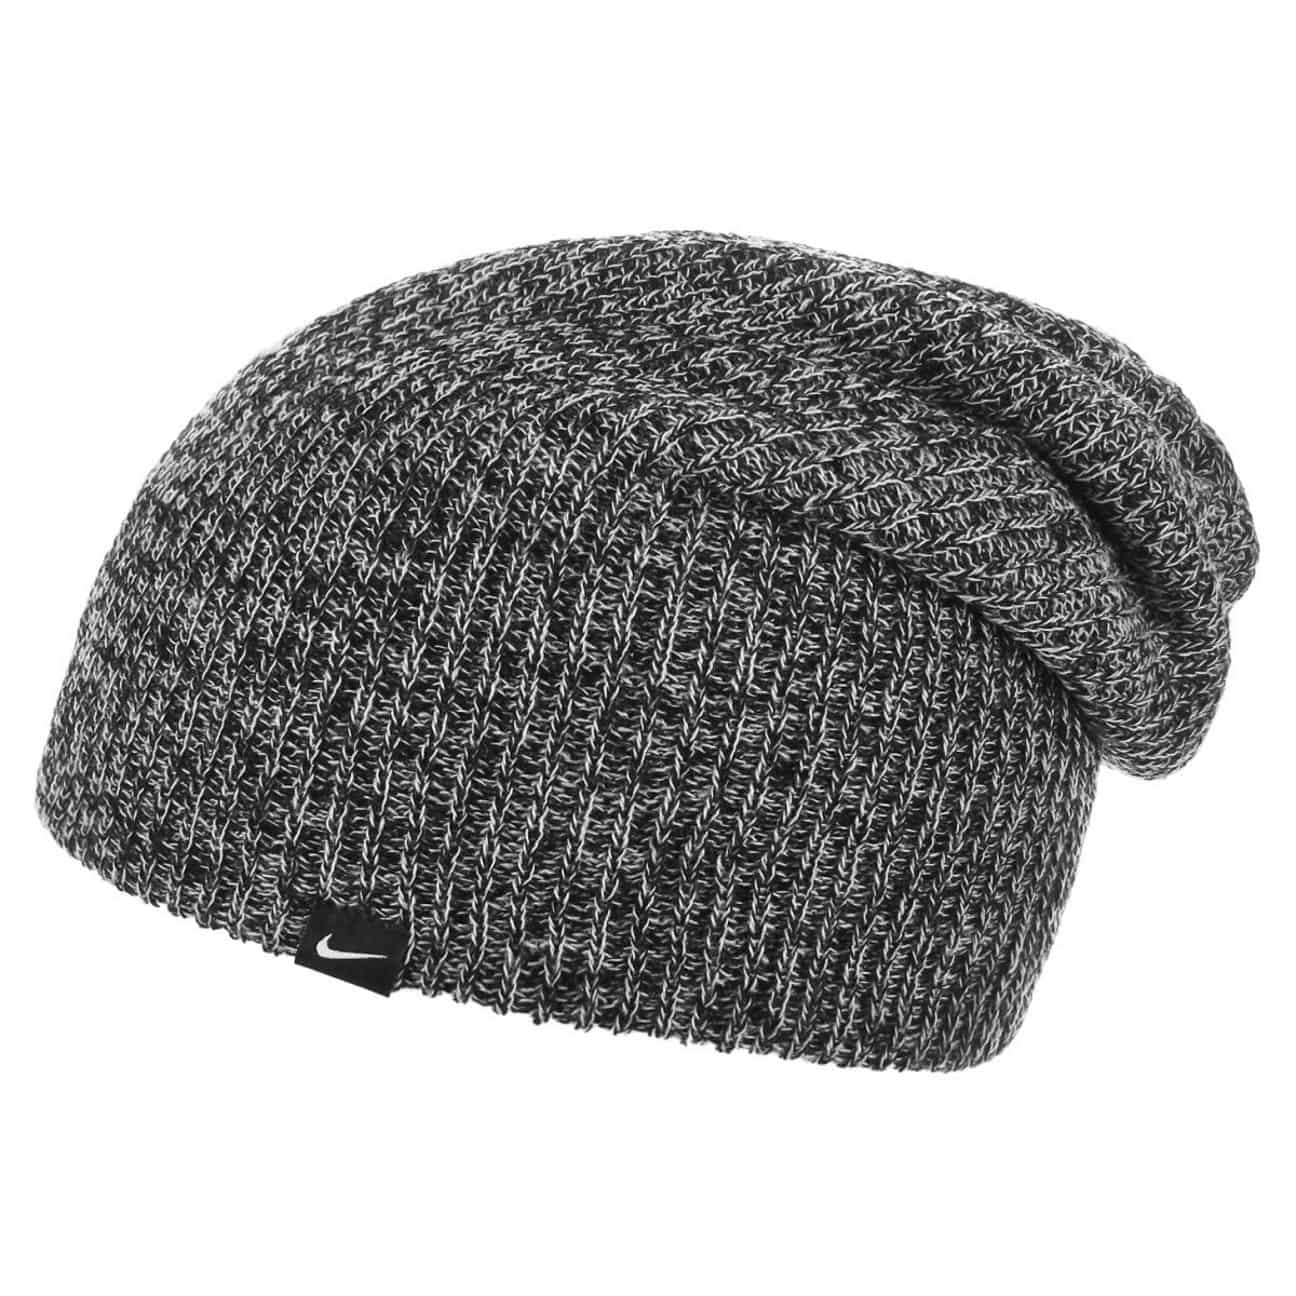 db1136c60ea ... Slouch Knit Beanie by Nike - black 1